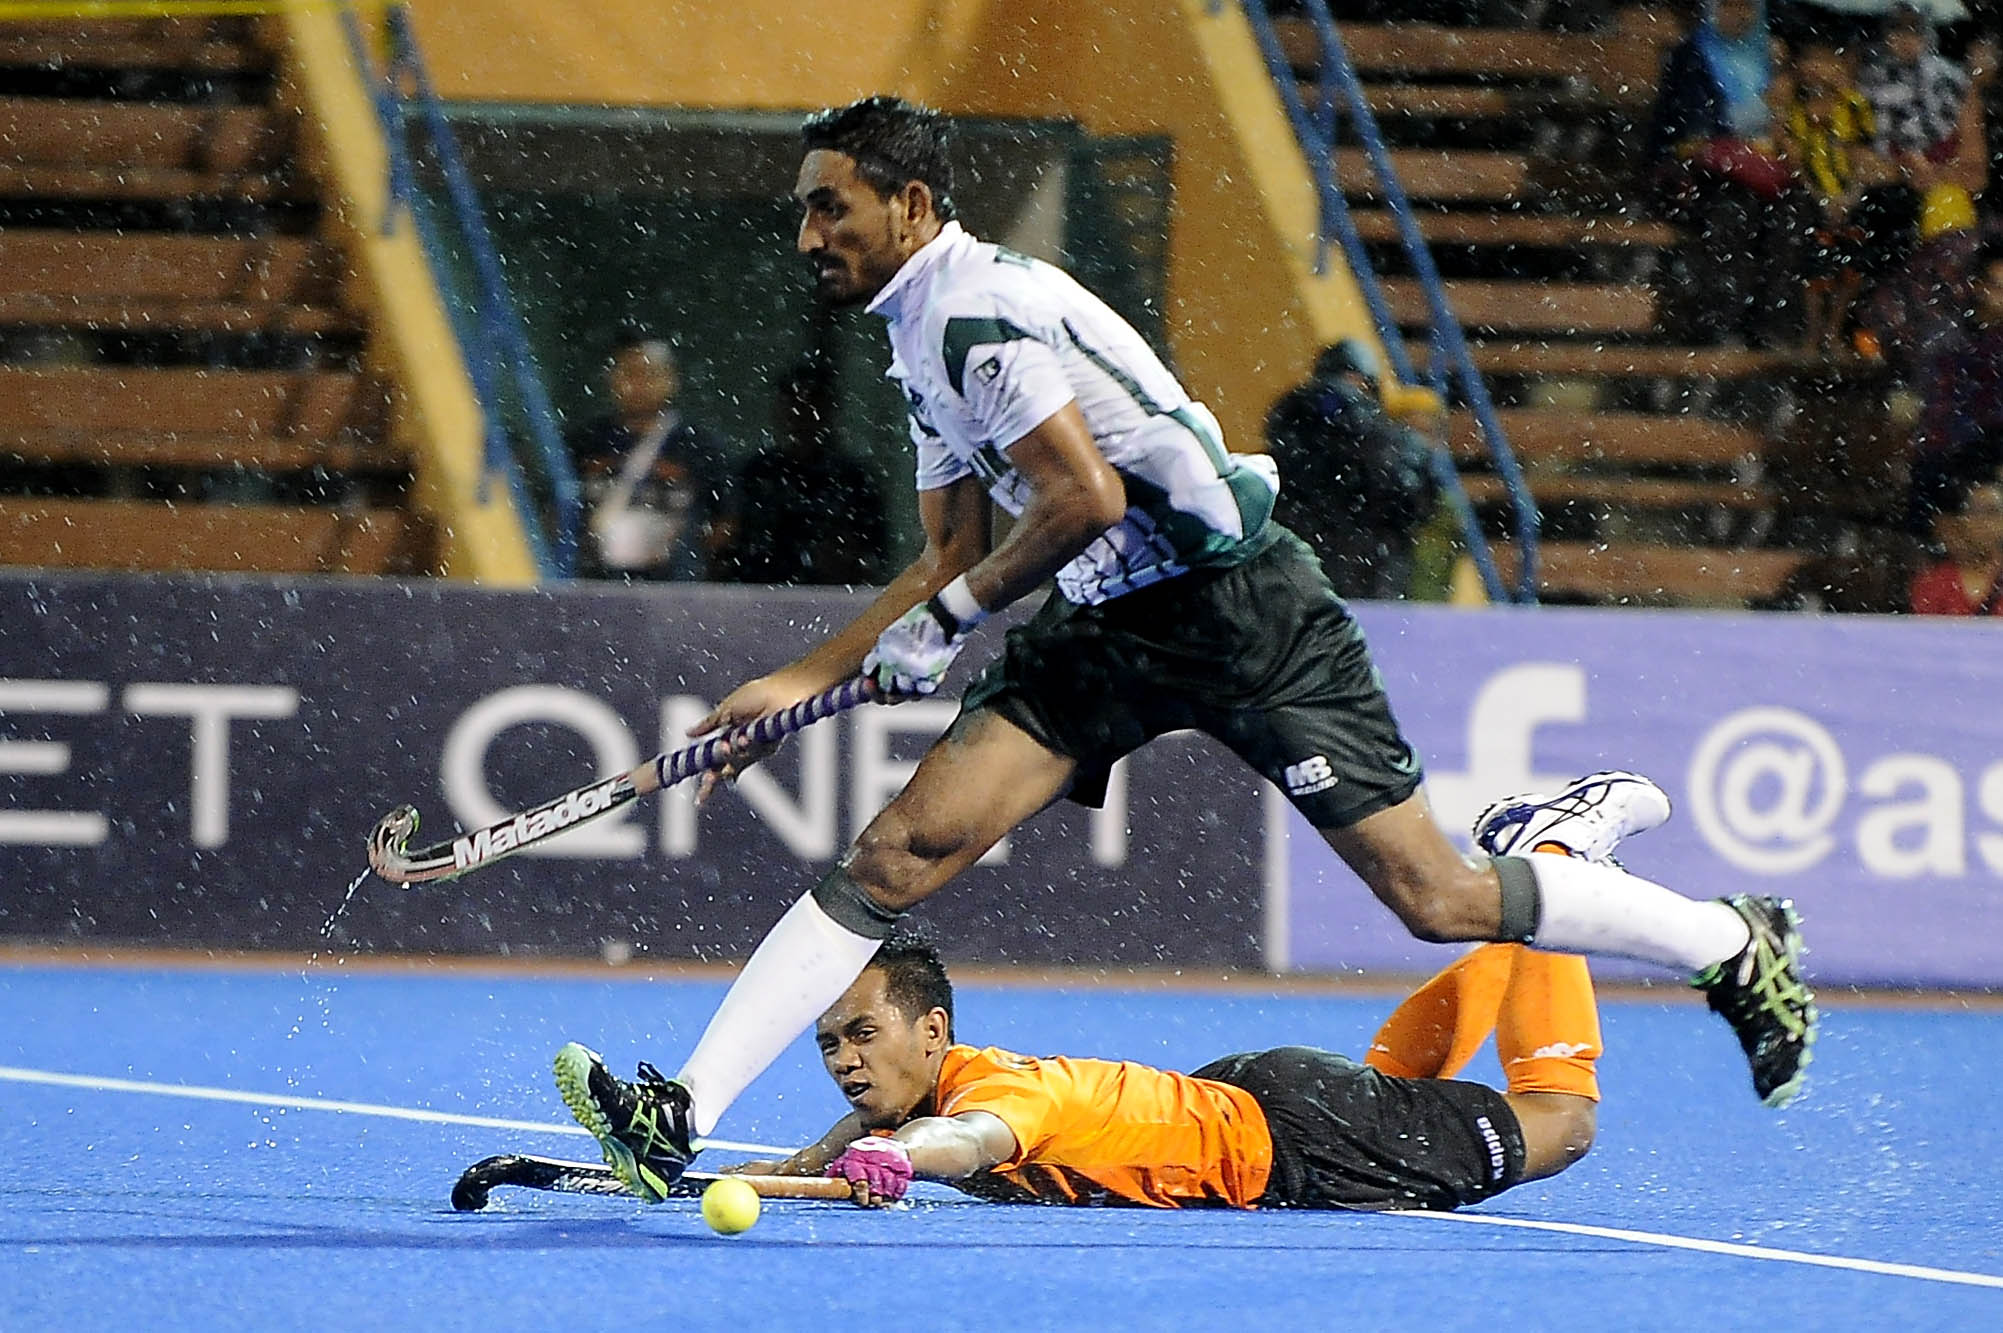 Malaysia's Faizal Saari (back) attempts to challenge a Pakistani player during their QNET 4th Men's Asian Champions Trophy 2016 semi-finals match at the Wisma Belia Hockey Stadium, Kuantan today. The full-time score was tied at 1-1 before Malaysia lost 3-2 in the shootout.